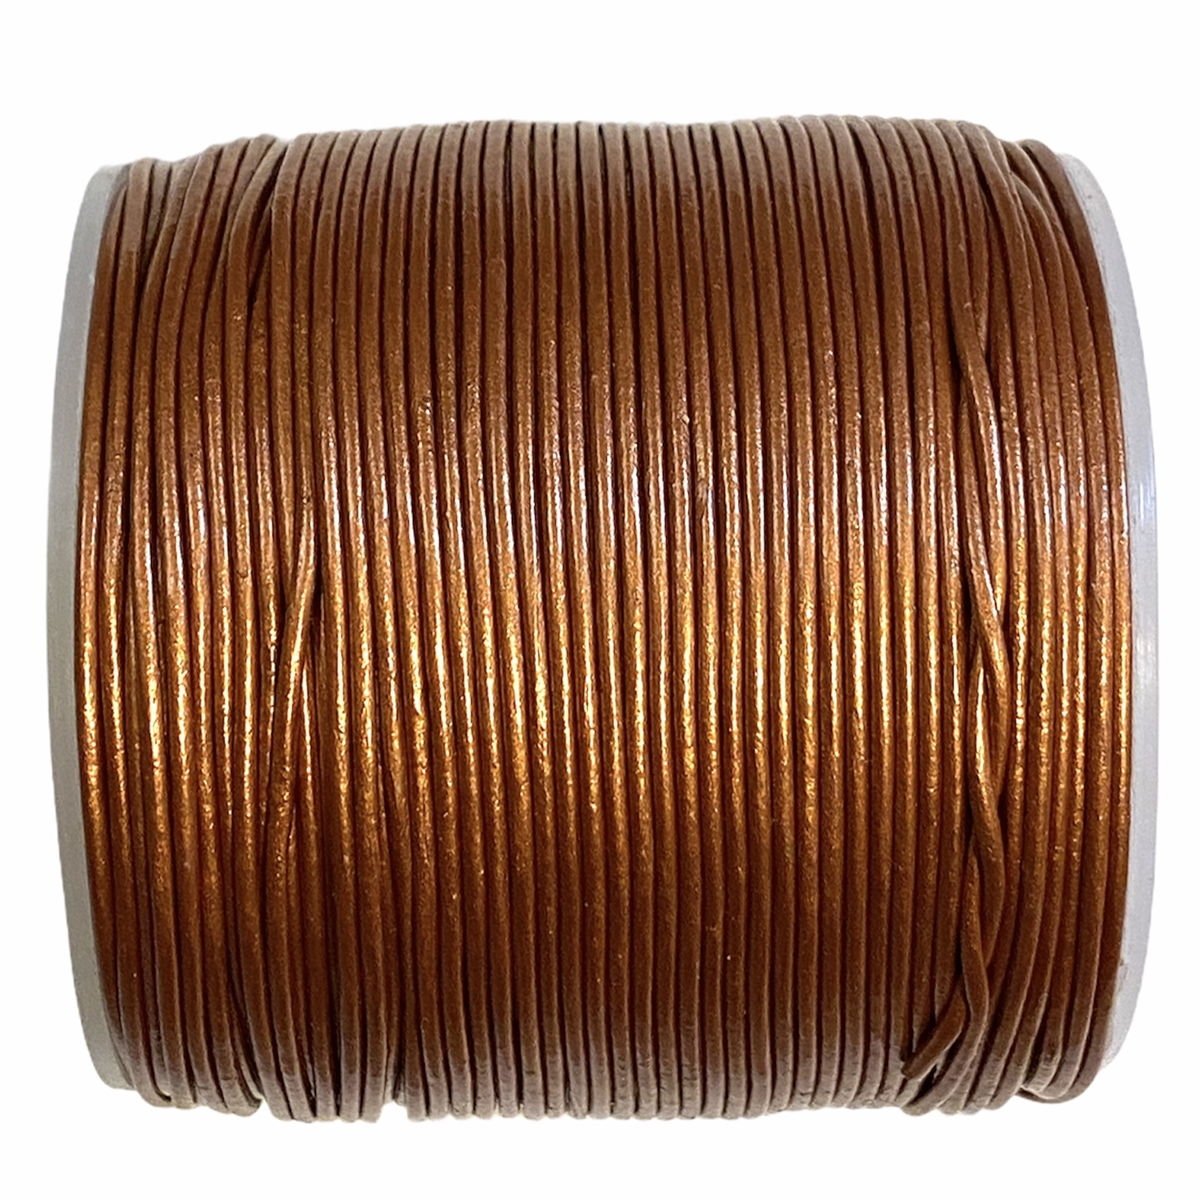 1mm Sand Brown Leather Cord,1mm Sand Brown Round Leather Cord,Leather Cord Bracelet,Leather Necklace Cord,Leather Wire Brown